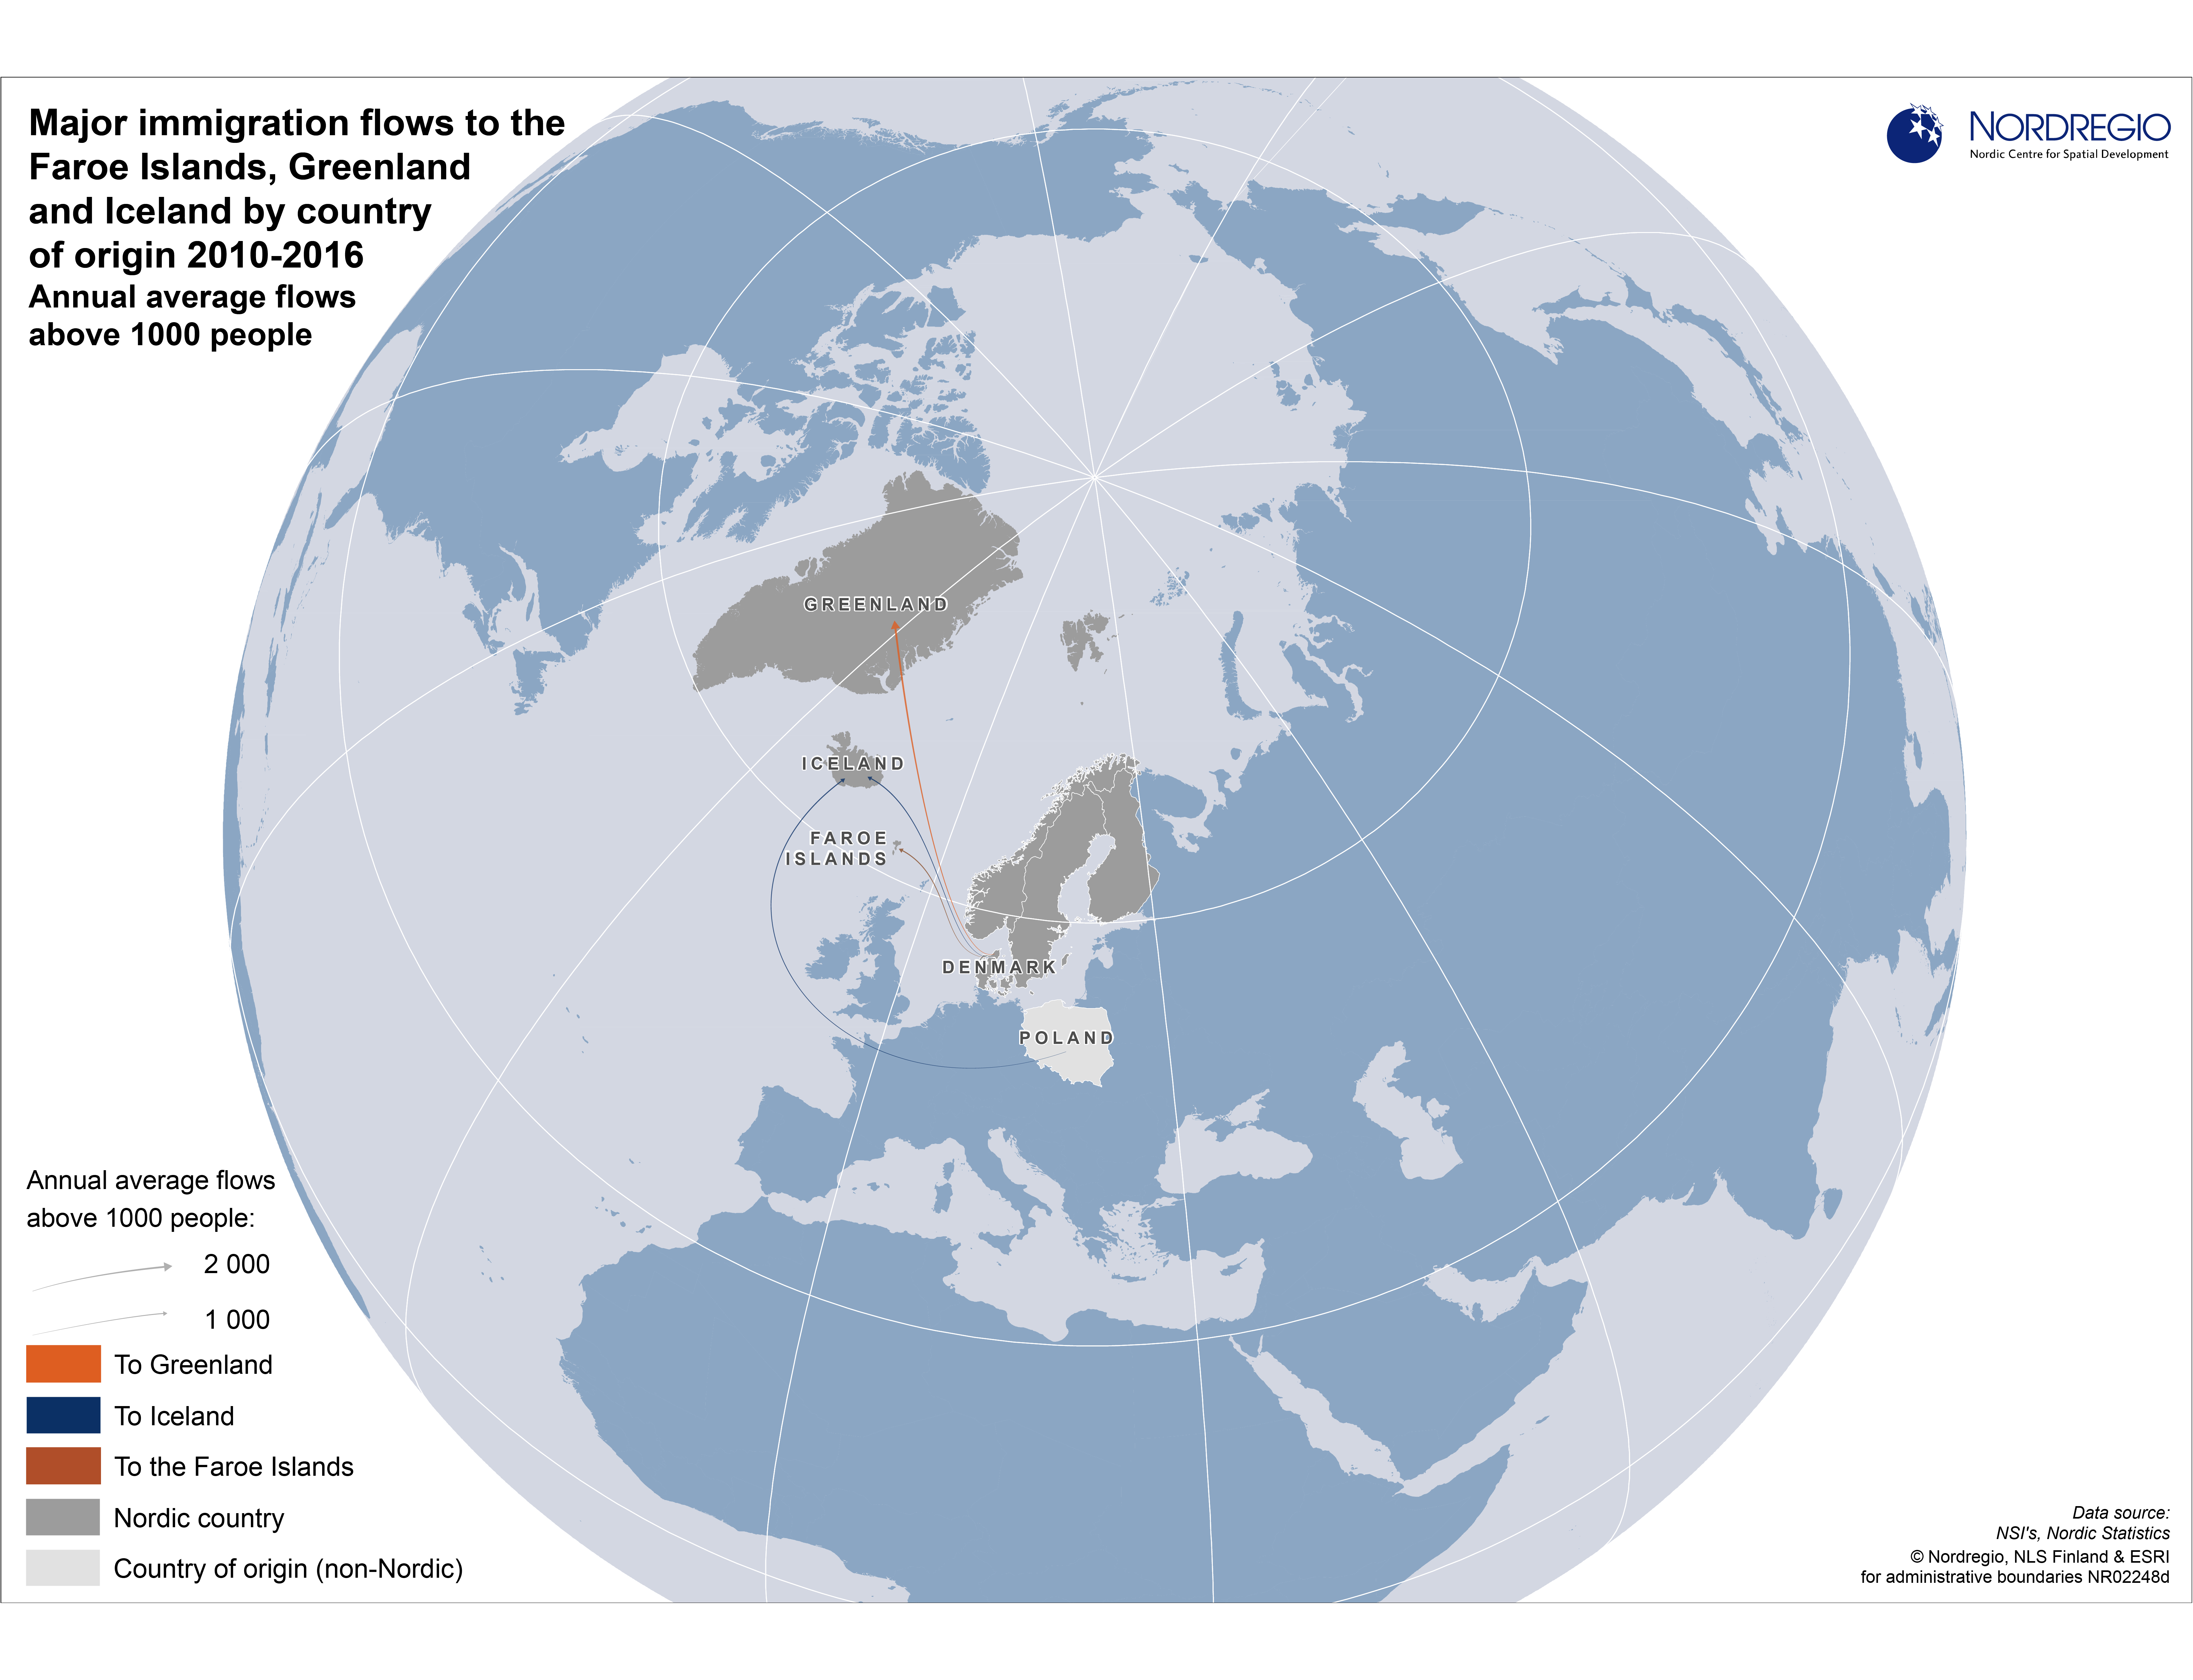 Major Immigration Flows To The Faroe